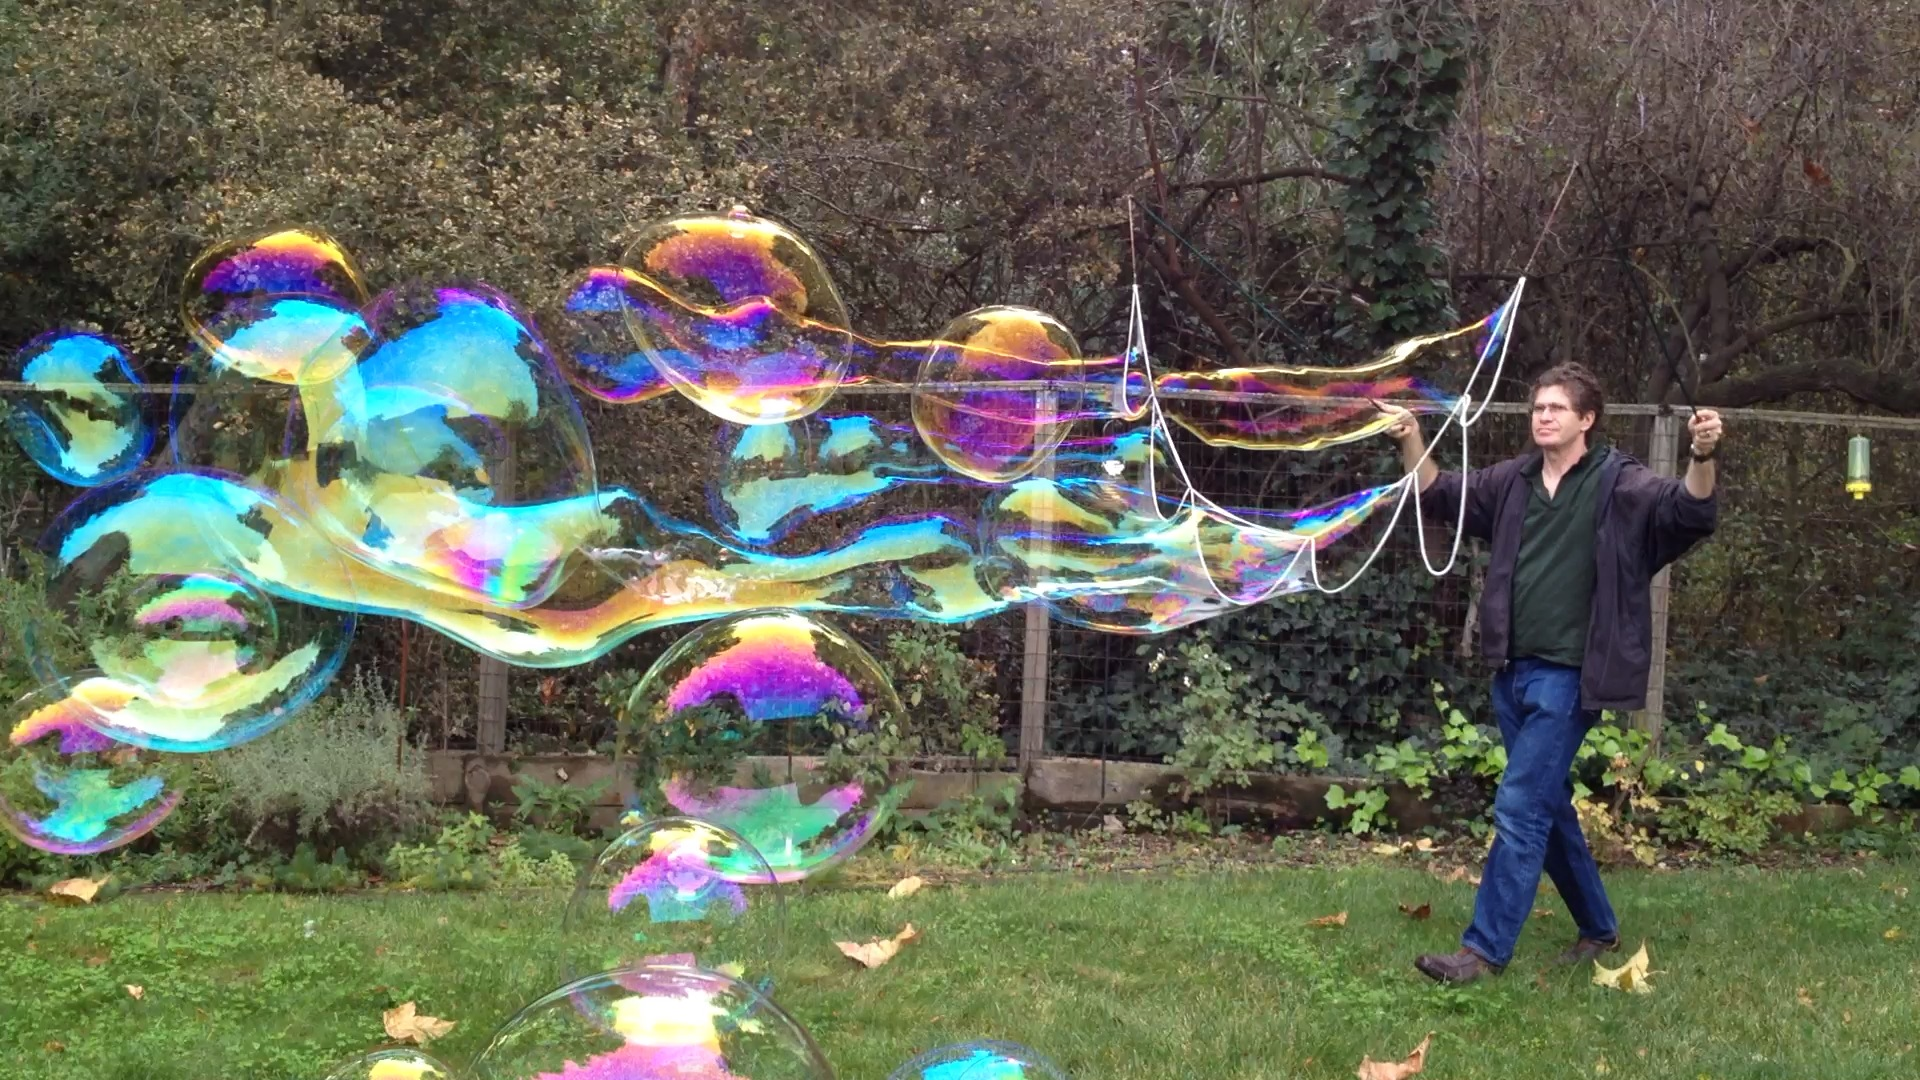 How to make big soap bubbles